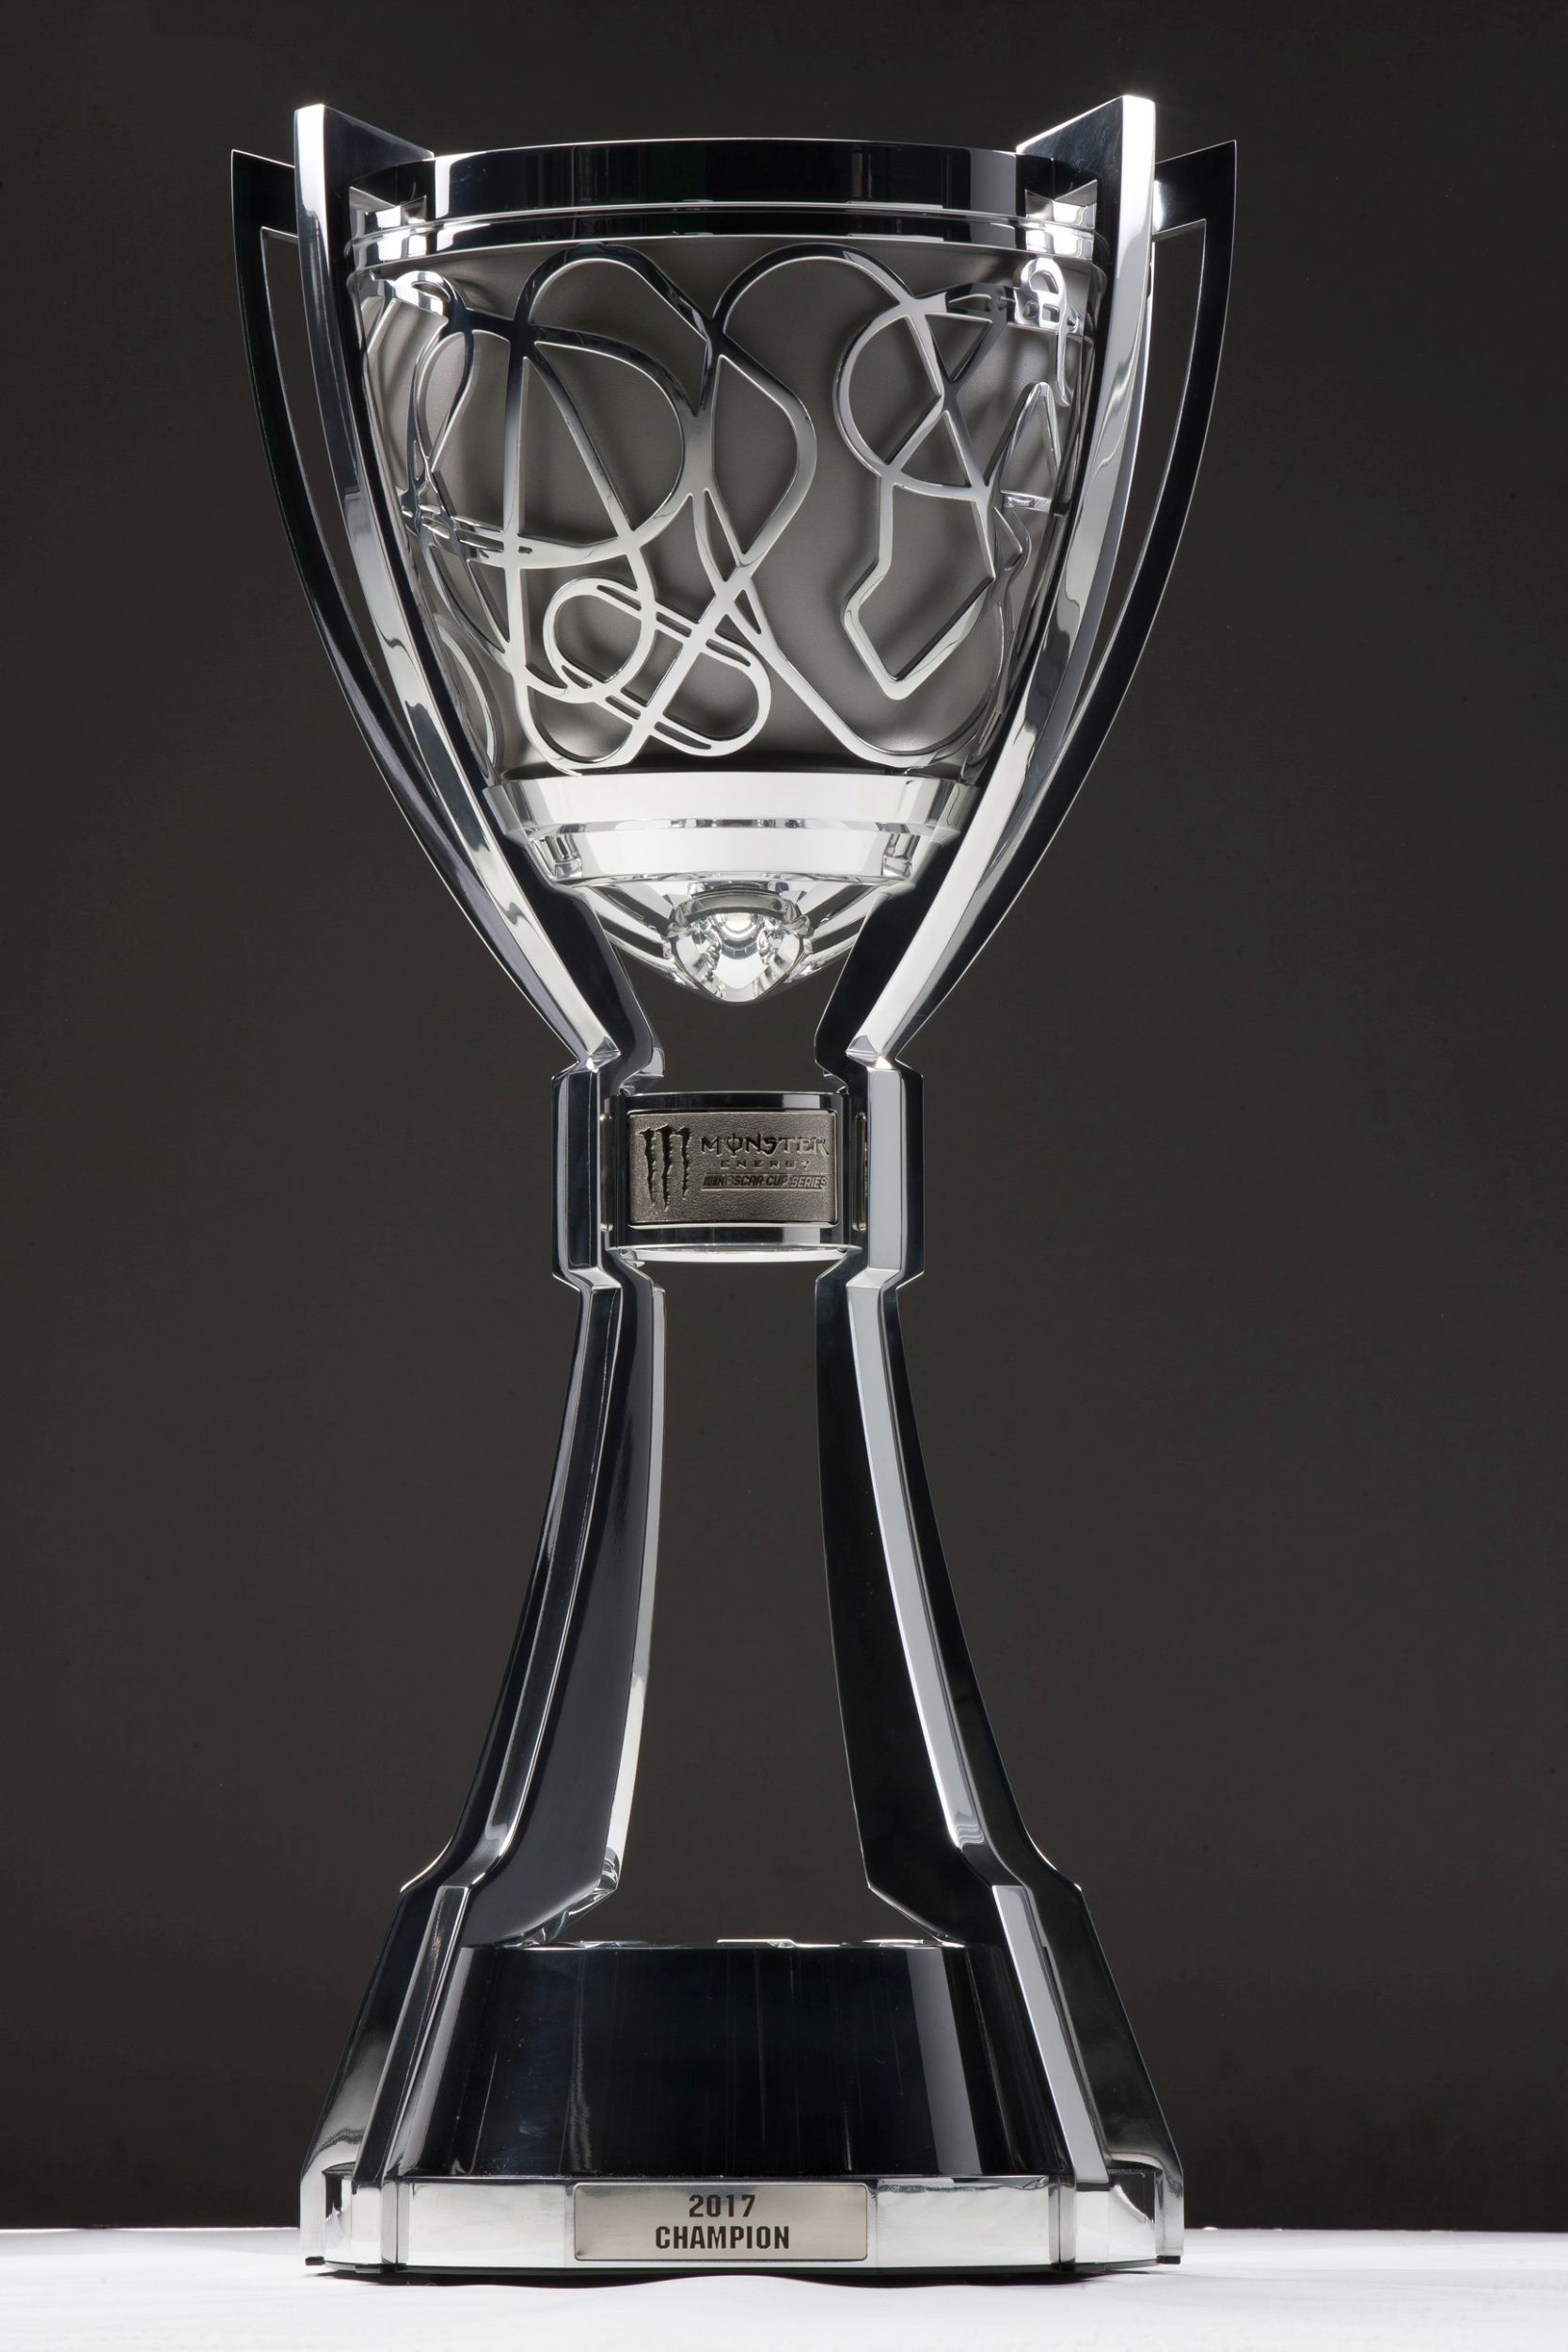 Monster Energy Nascar Cup Championship Trophy Unveiled Catchfence